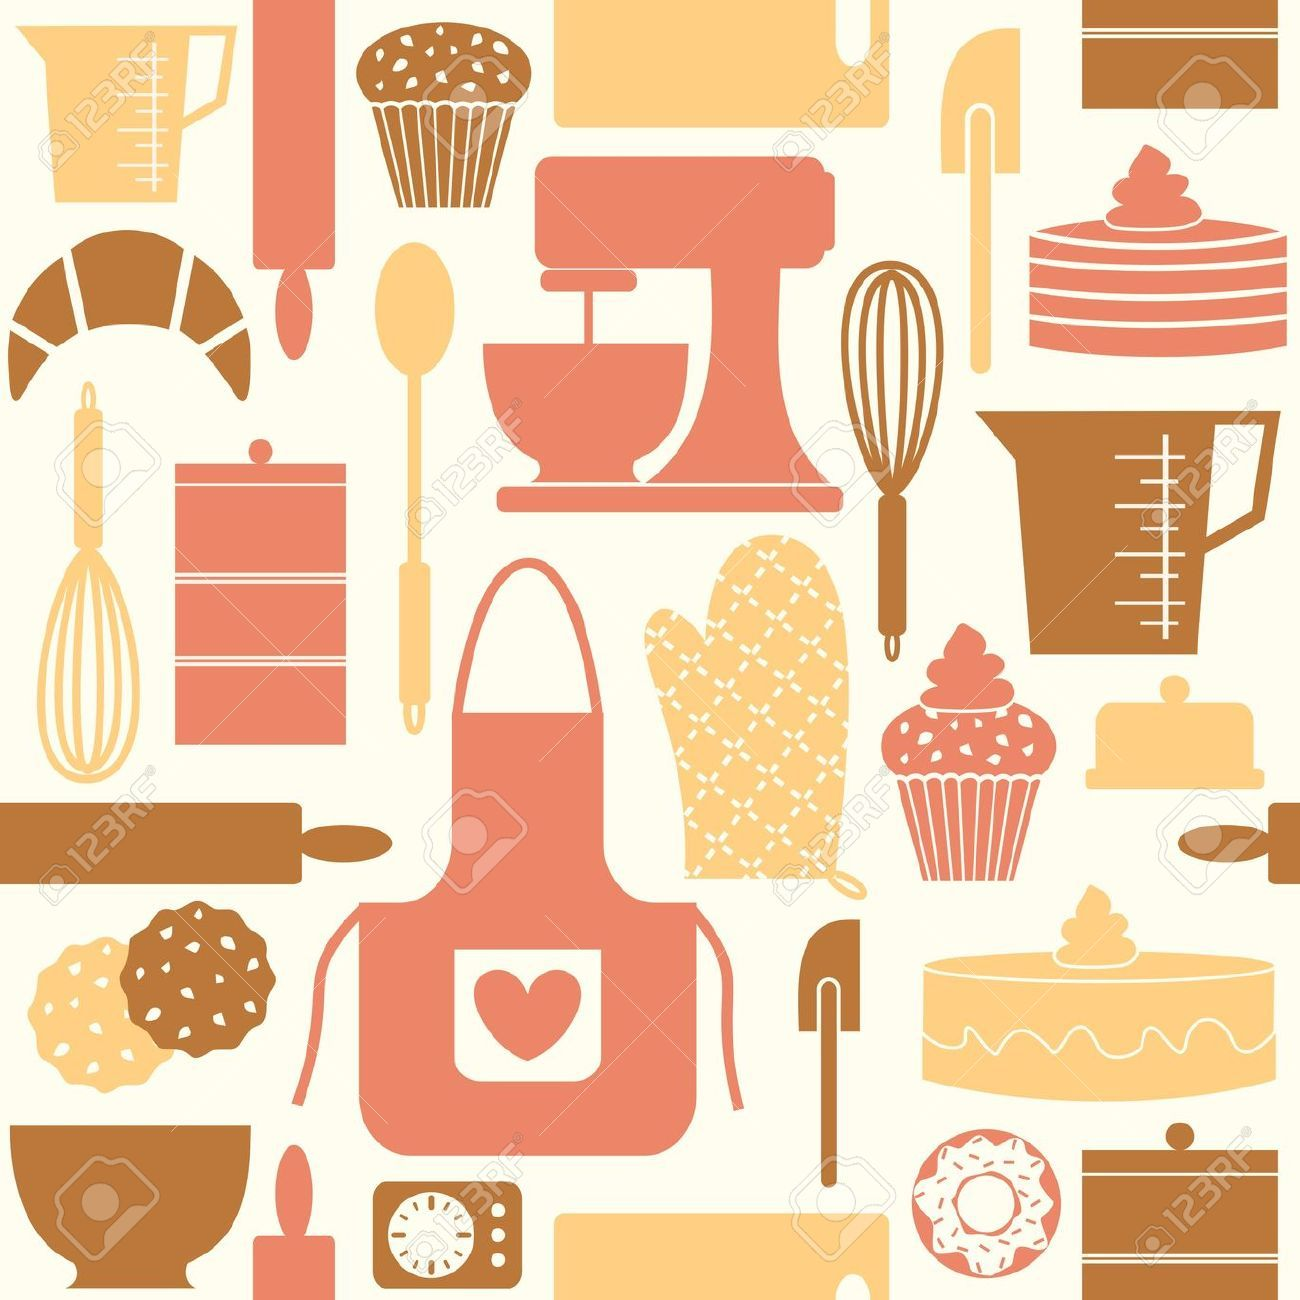 Kitchen Utensils Background: Pastry Images, Stock Pictures, Royalty Free Pastry Photos